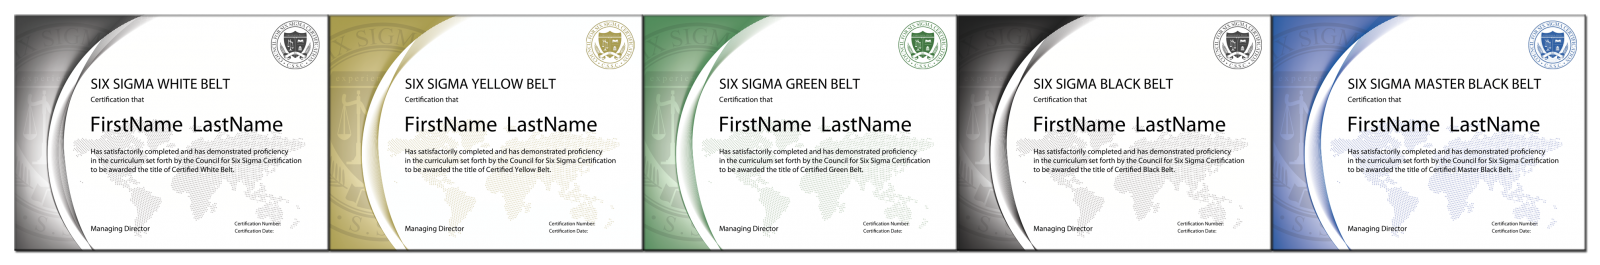 The Council For Six Sigma Certification Official Industry Standard